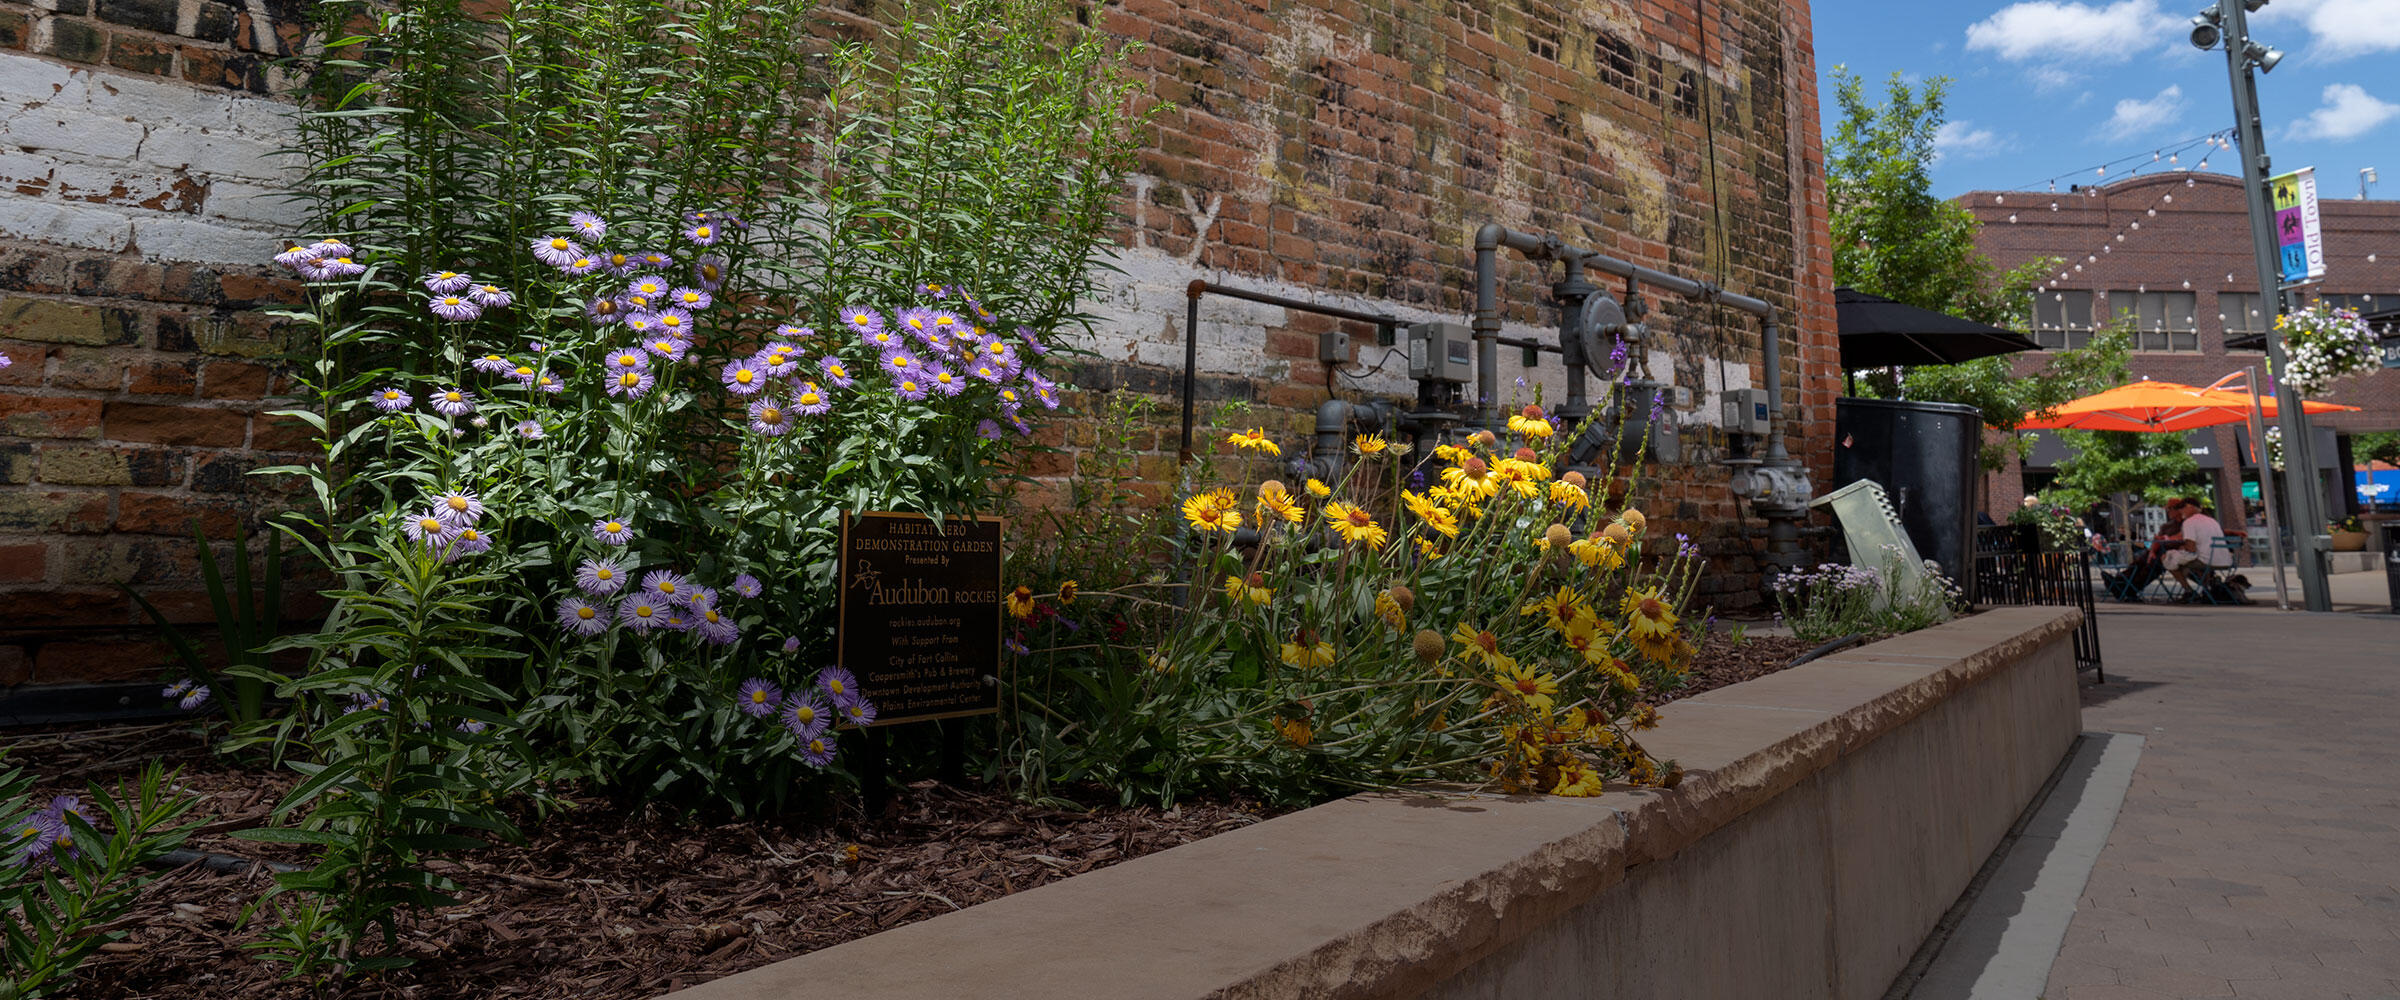 Asters and blanketflowers bloom in a garden in downtown Fort Collins.